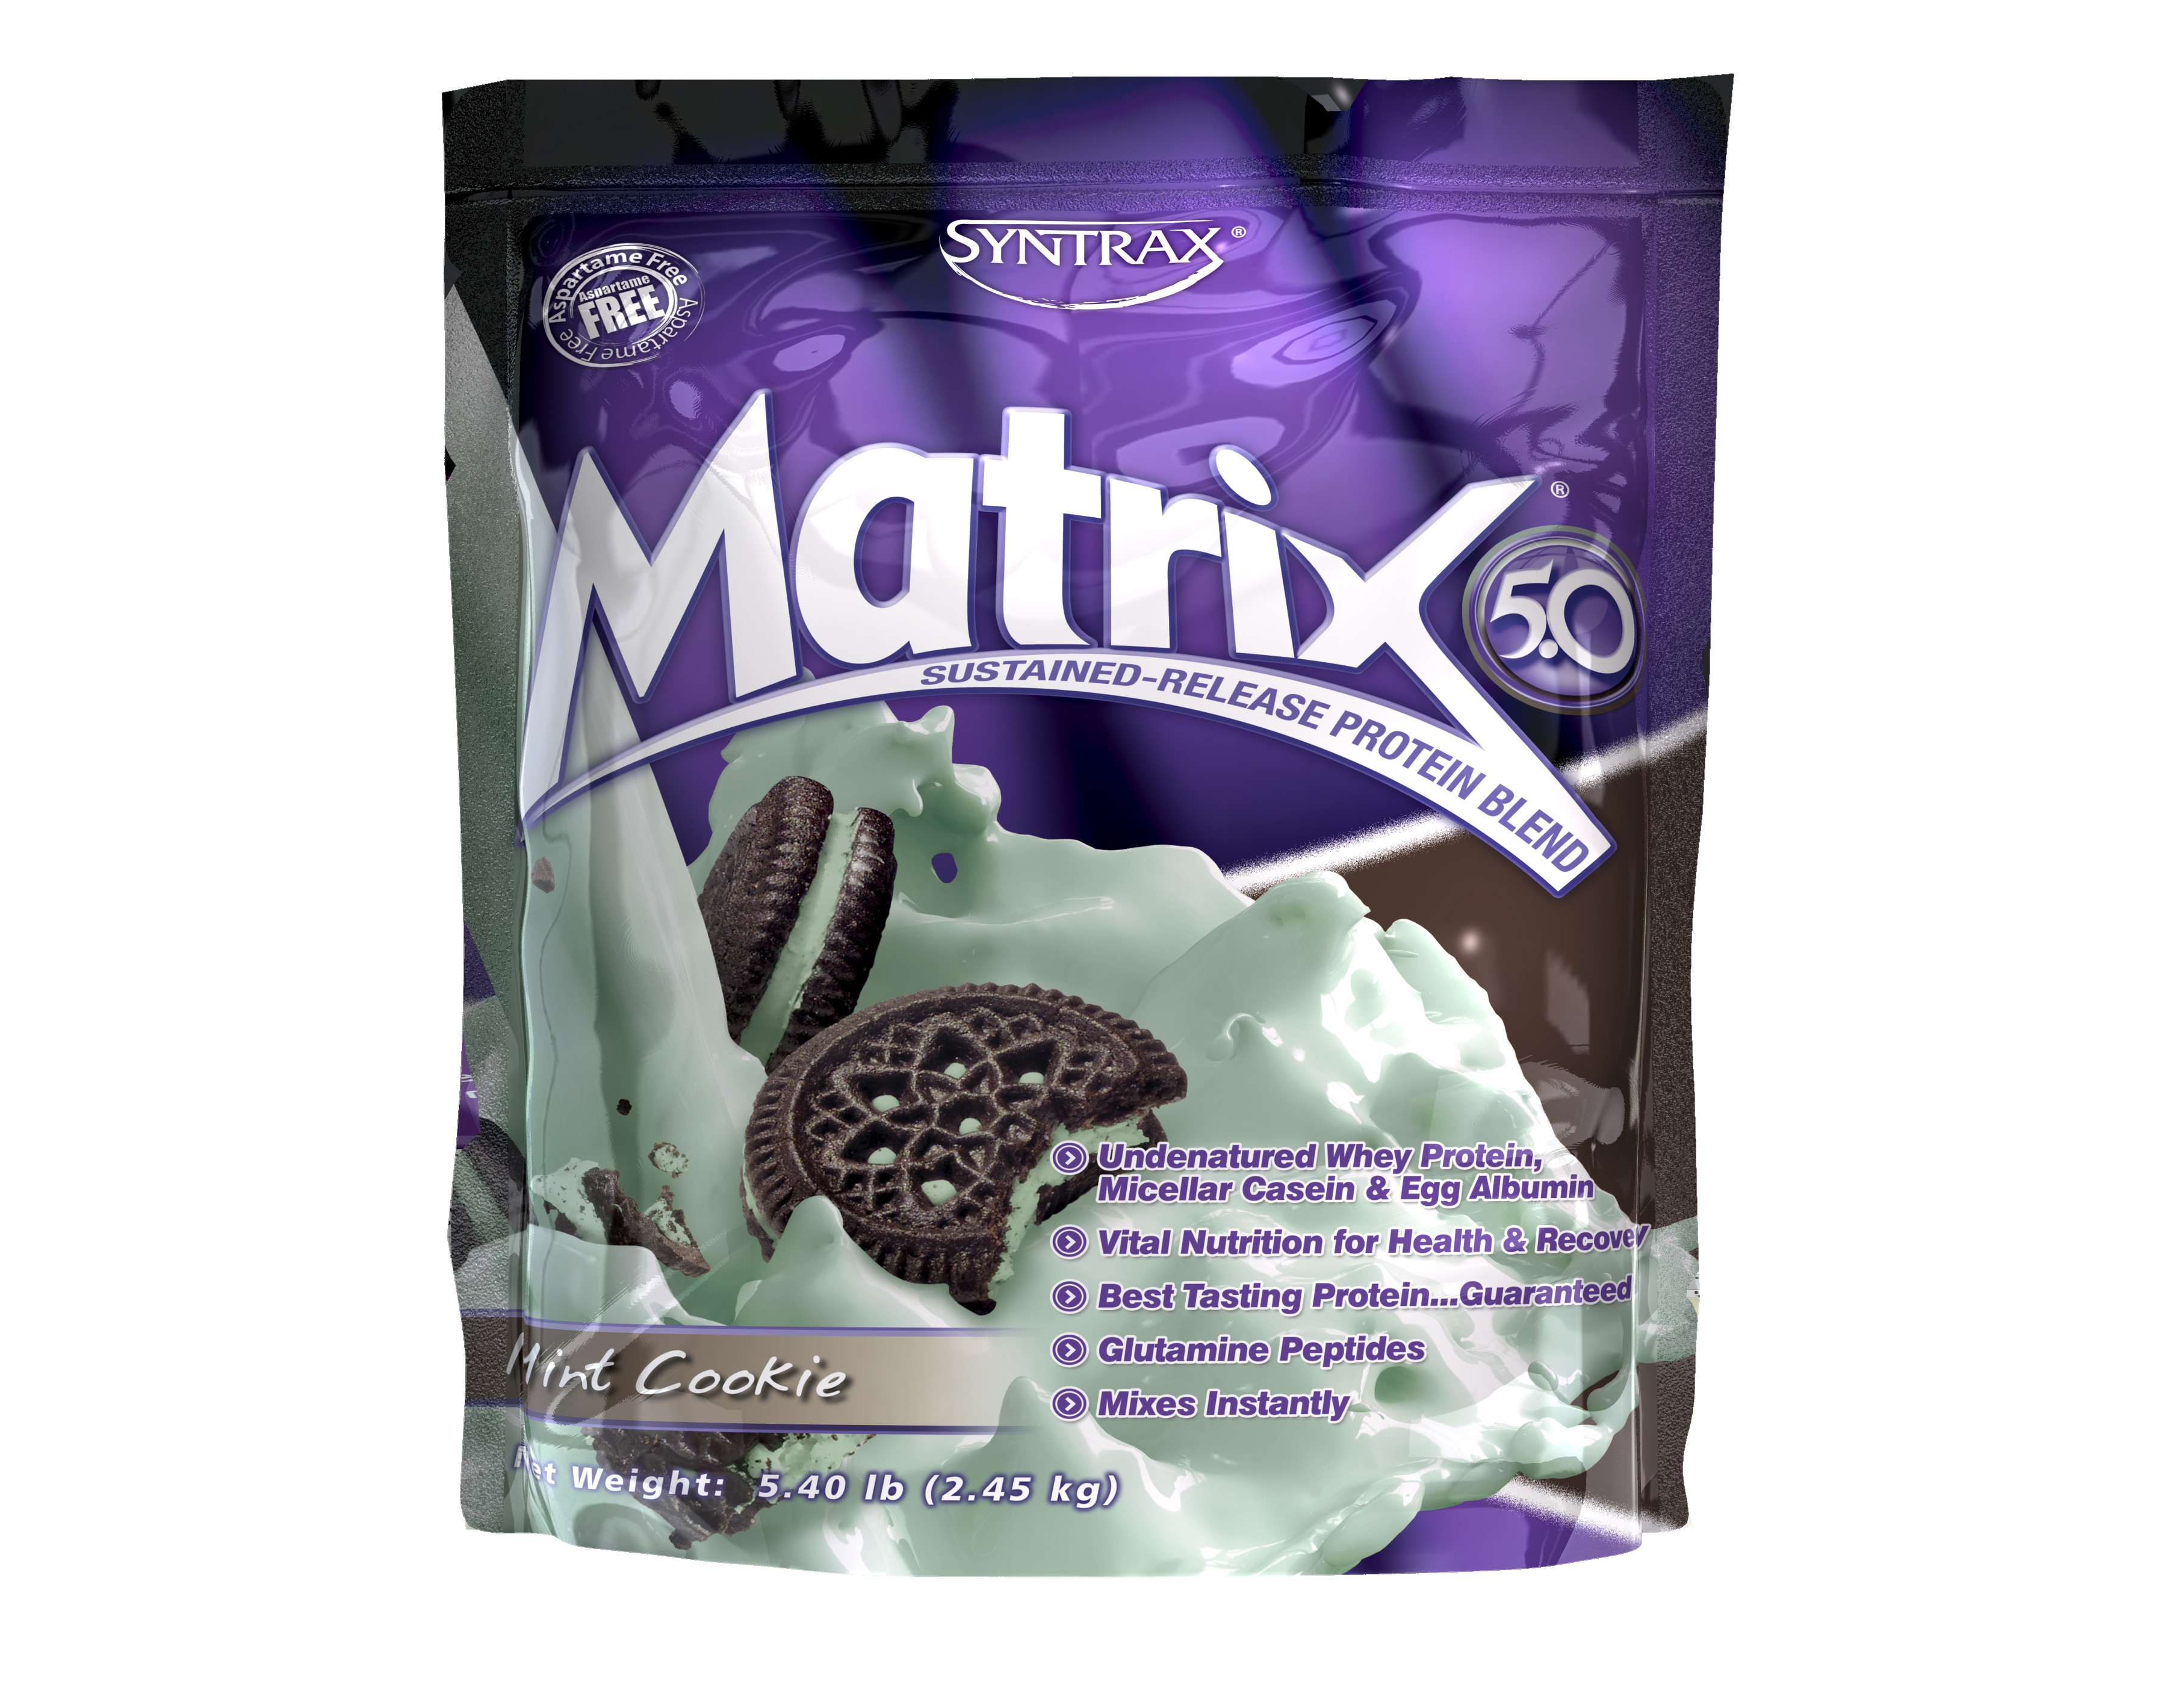 МАТРИКС 5.0 – МЕНТОВА БИСКВИТА прах 2.45кг СИНТРАКС | MATRIX 5.0 – MINT COOKIE pwd 2.45kg SYNTRAX